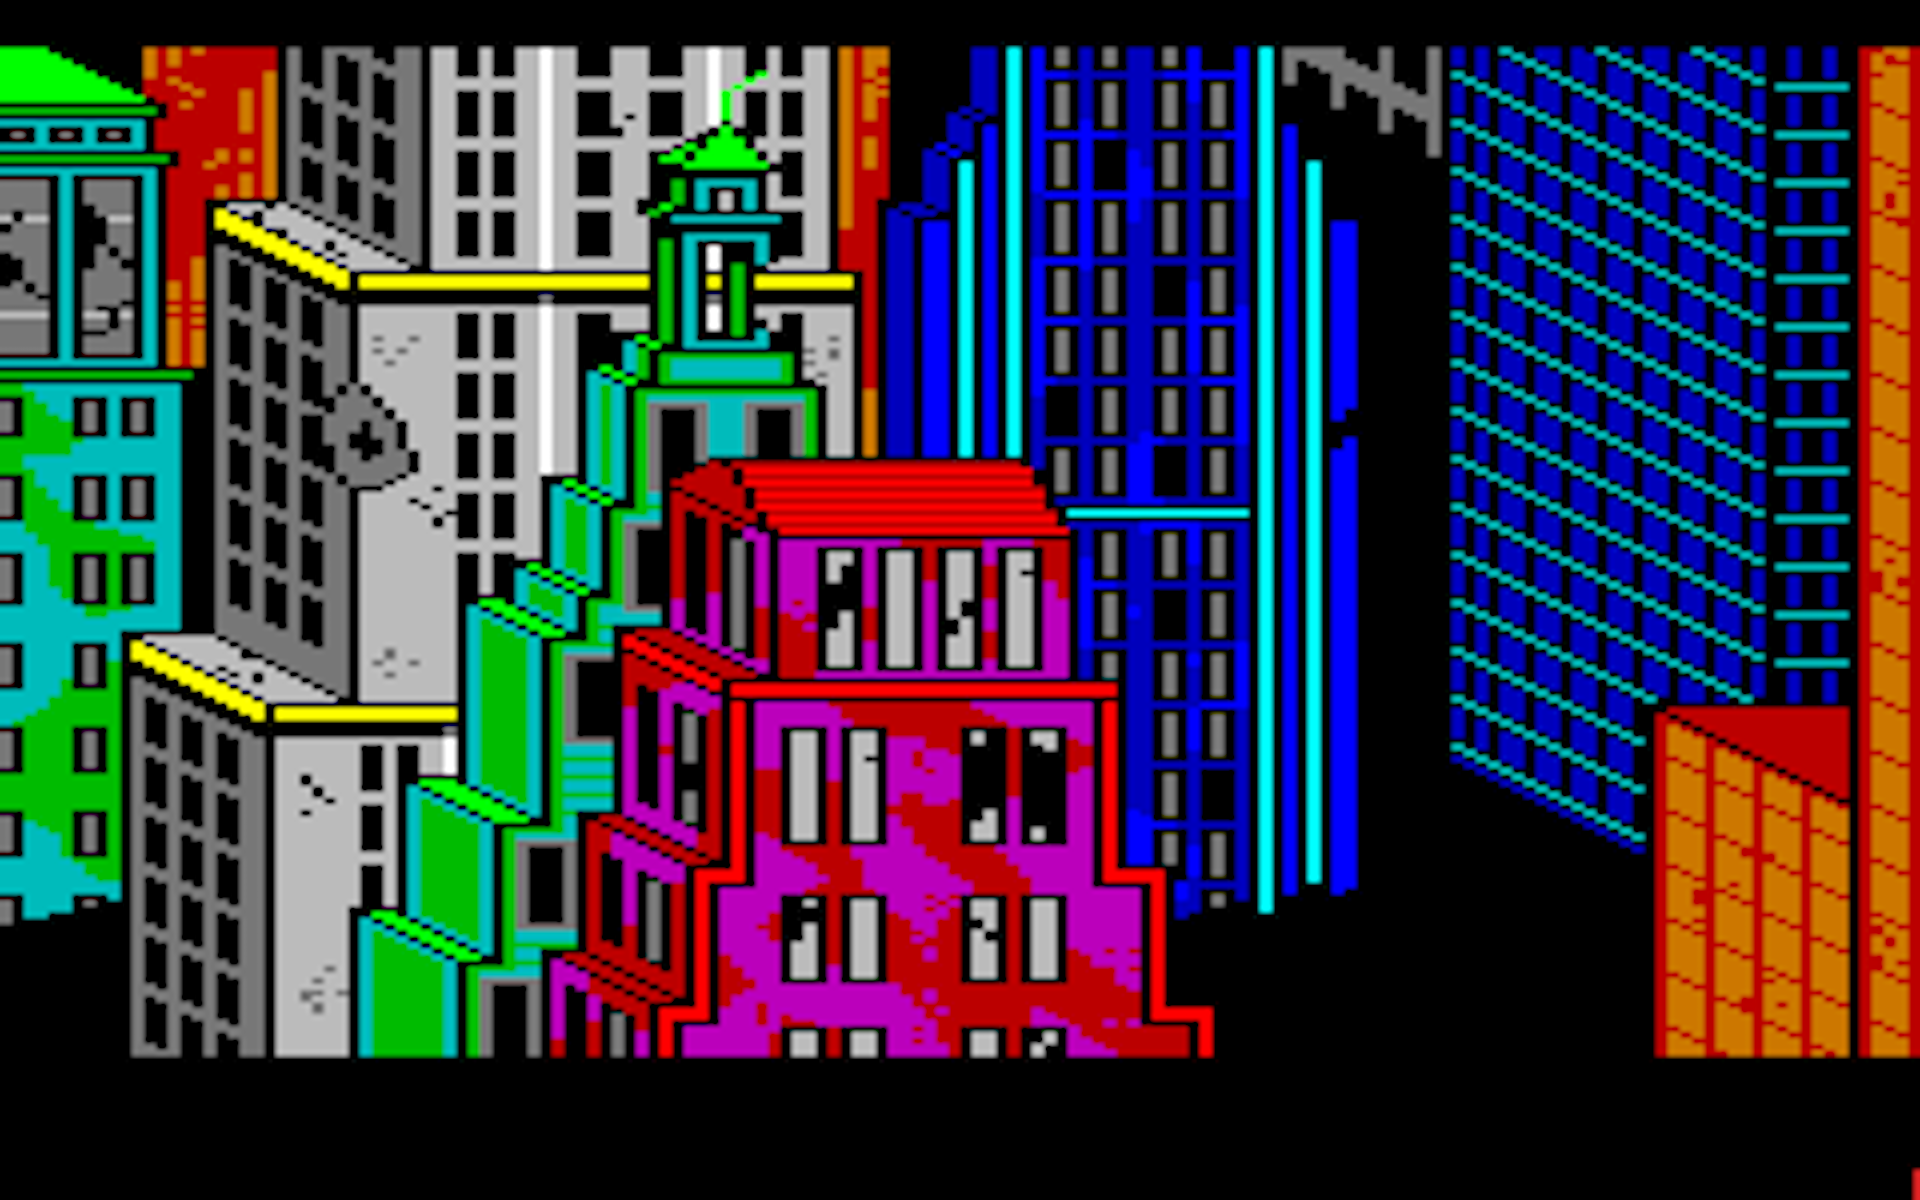 335246-manhunter-new-york-amiga-screenshot-intro-new-york-looks-a